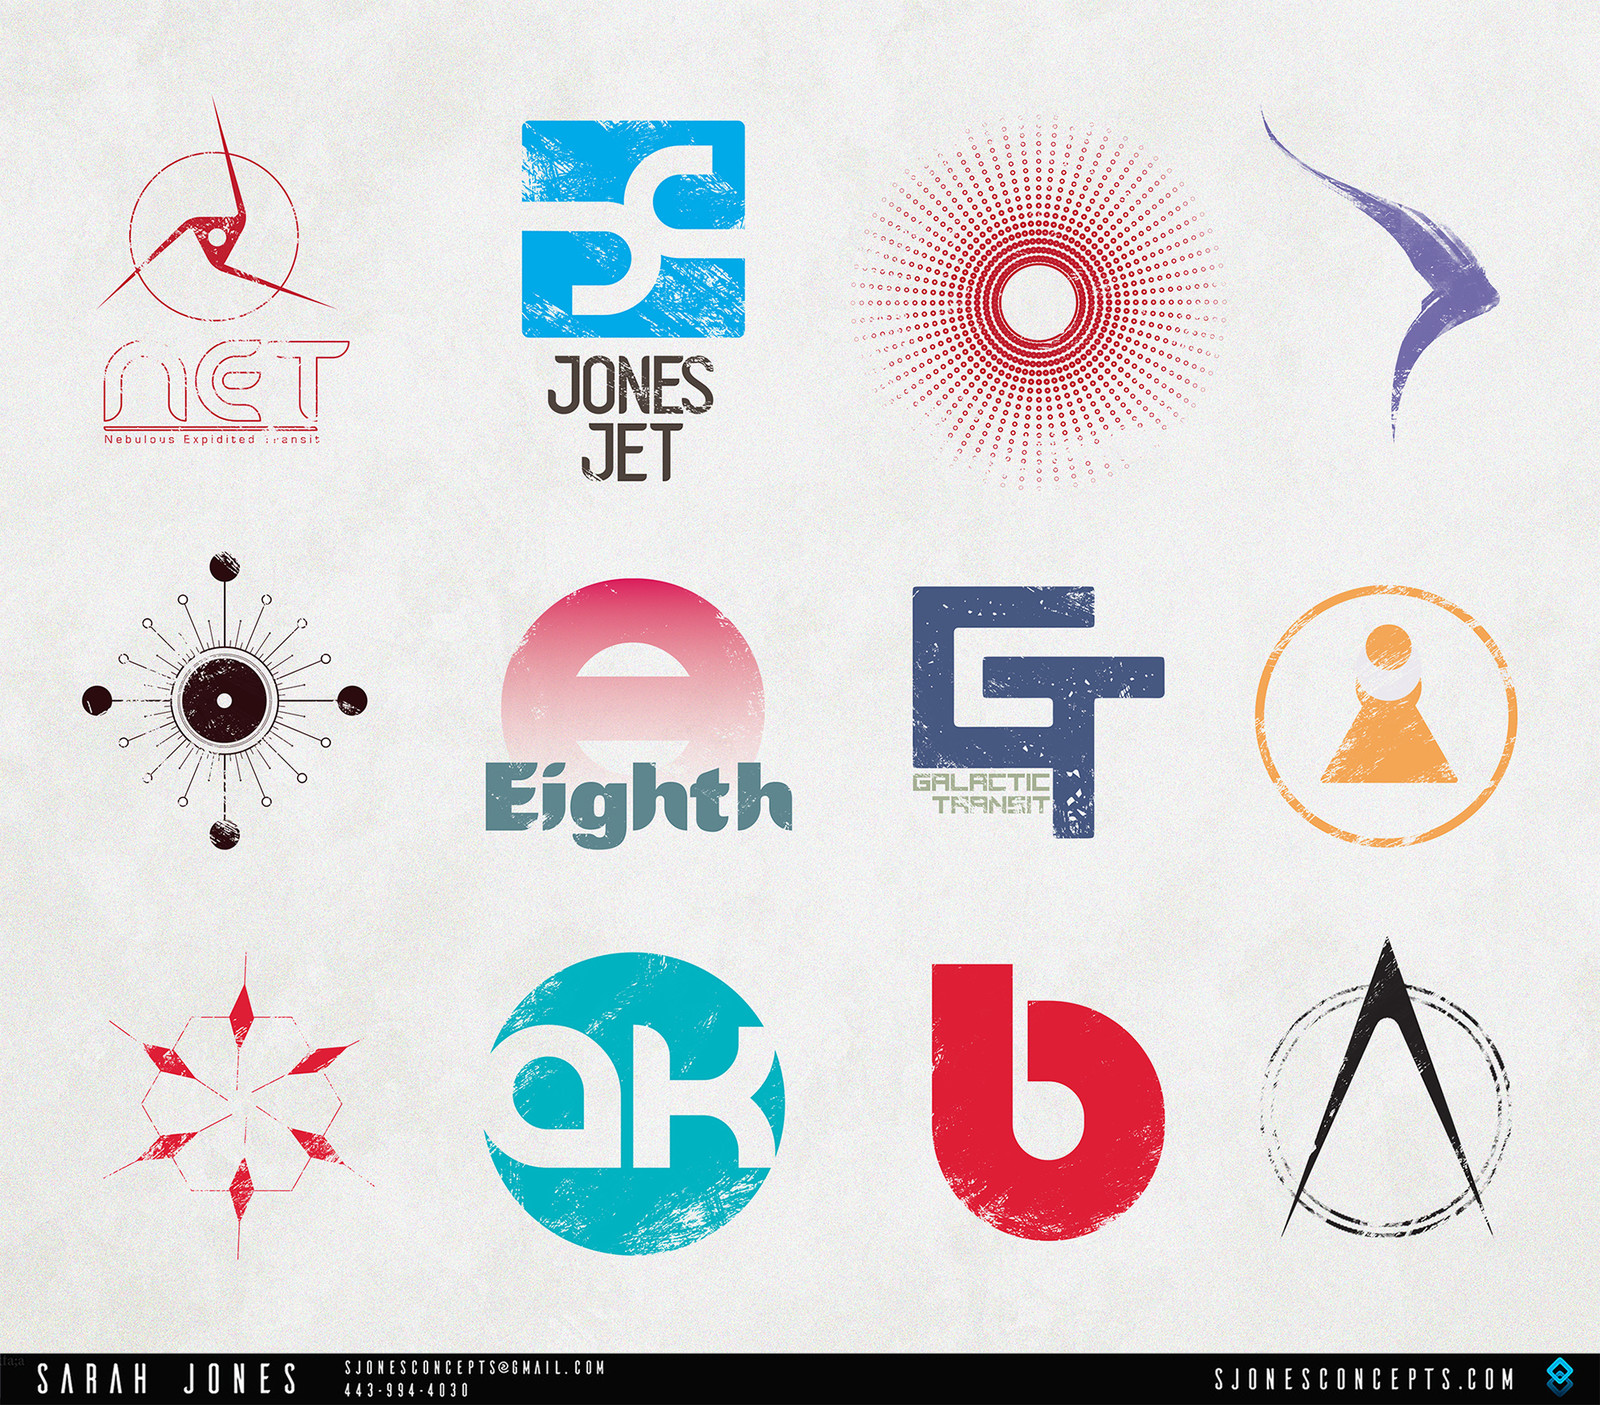 Thesis: Logos and Branding